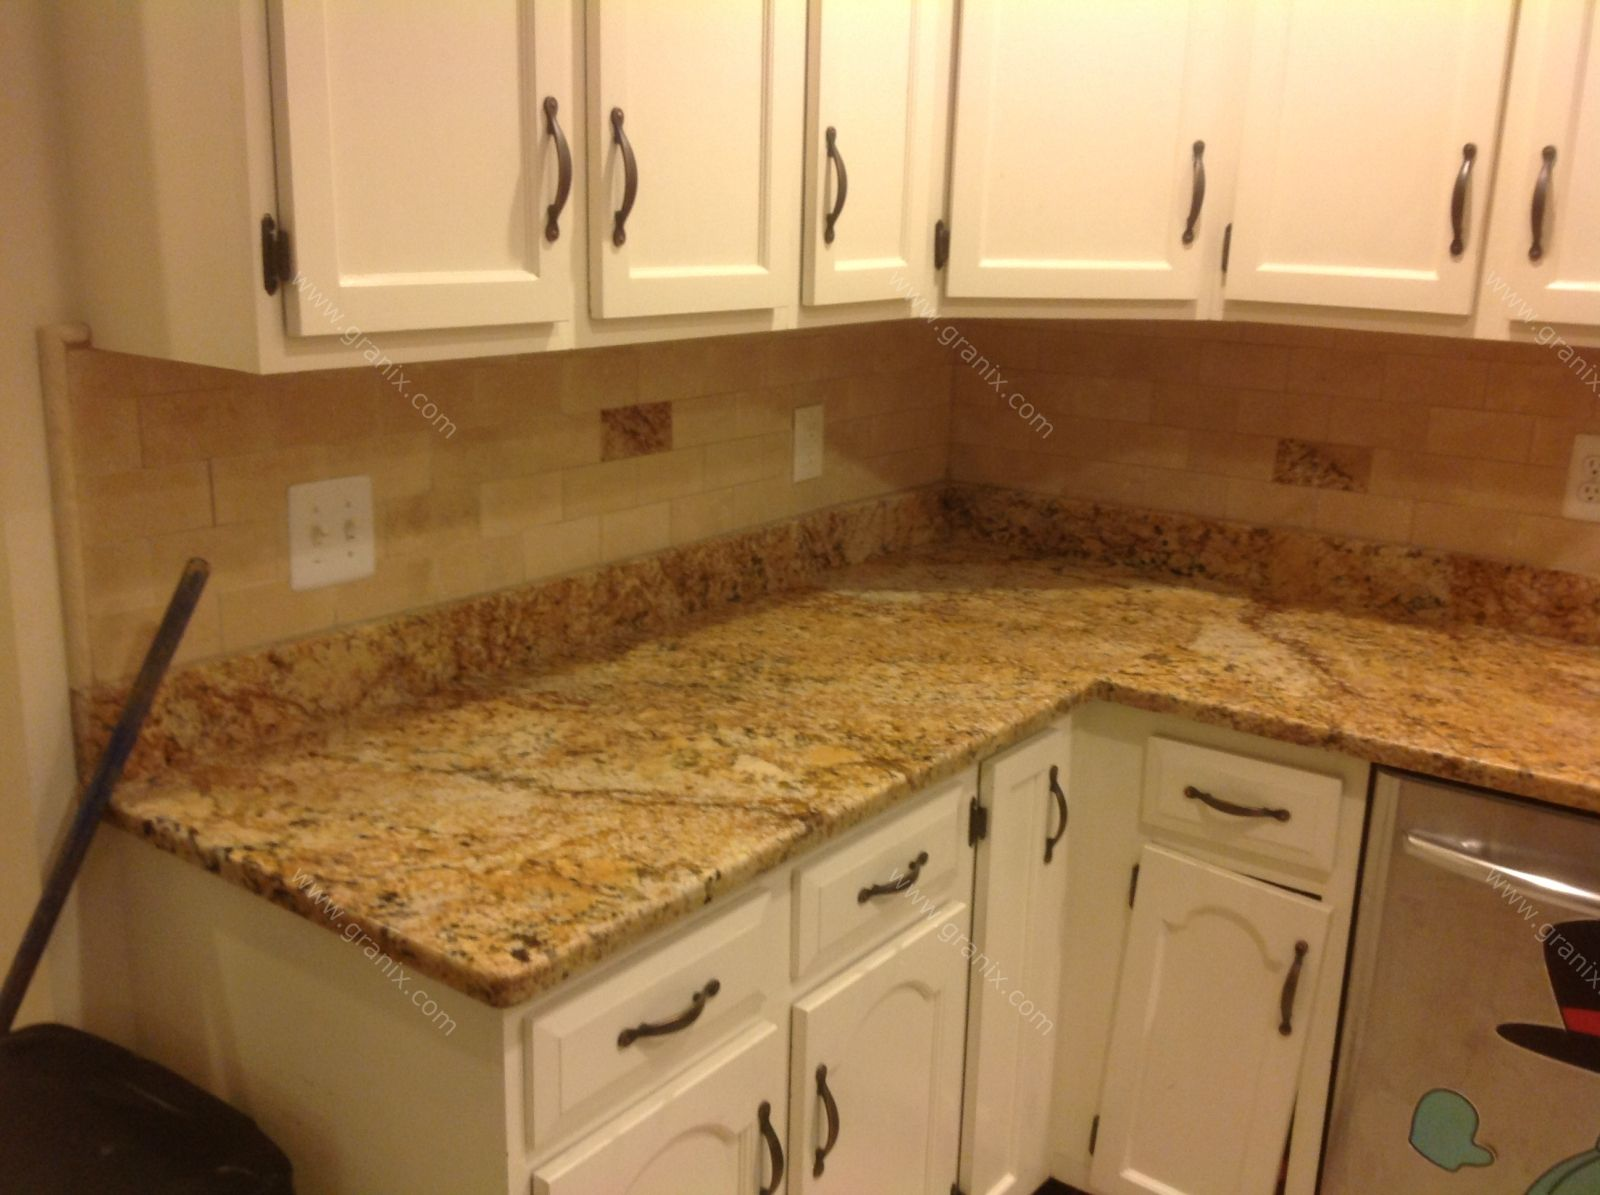 Granite Backsplash Ideas Part - 17: Backsplash Ideas For Granite Countertops | Leave A Reply Cancel Reply